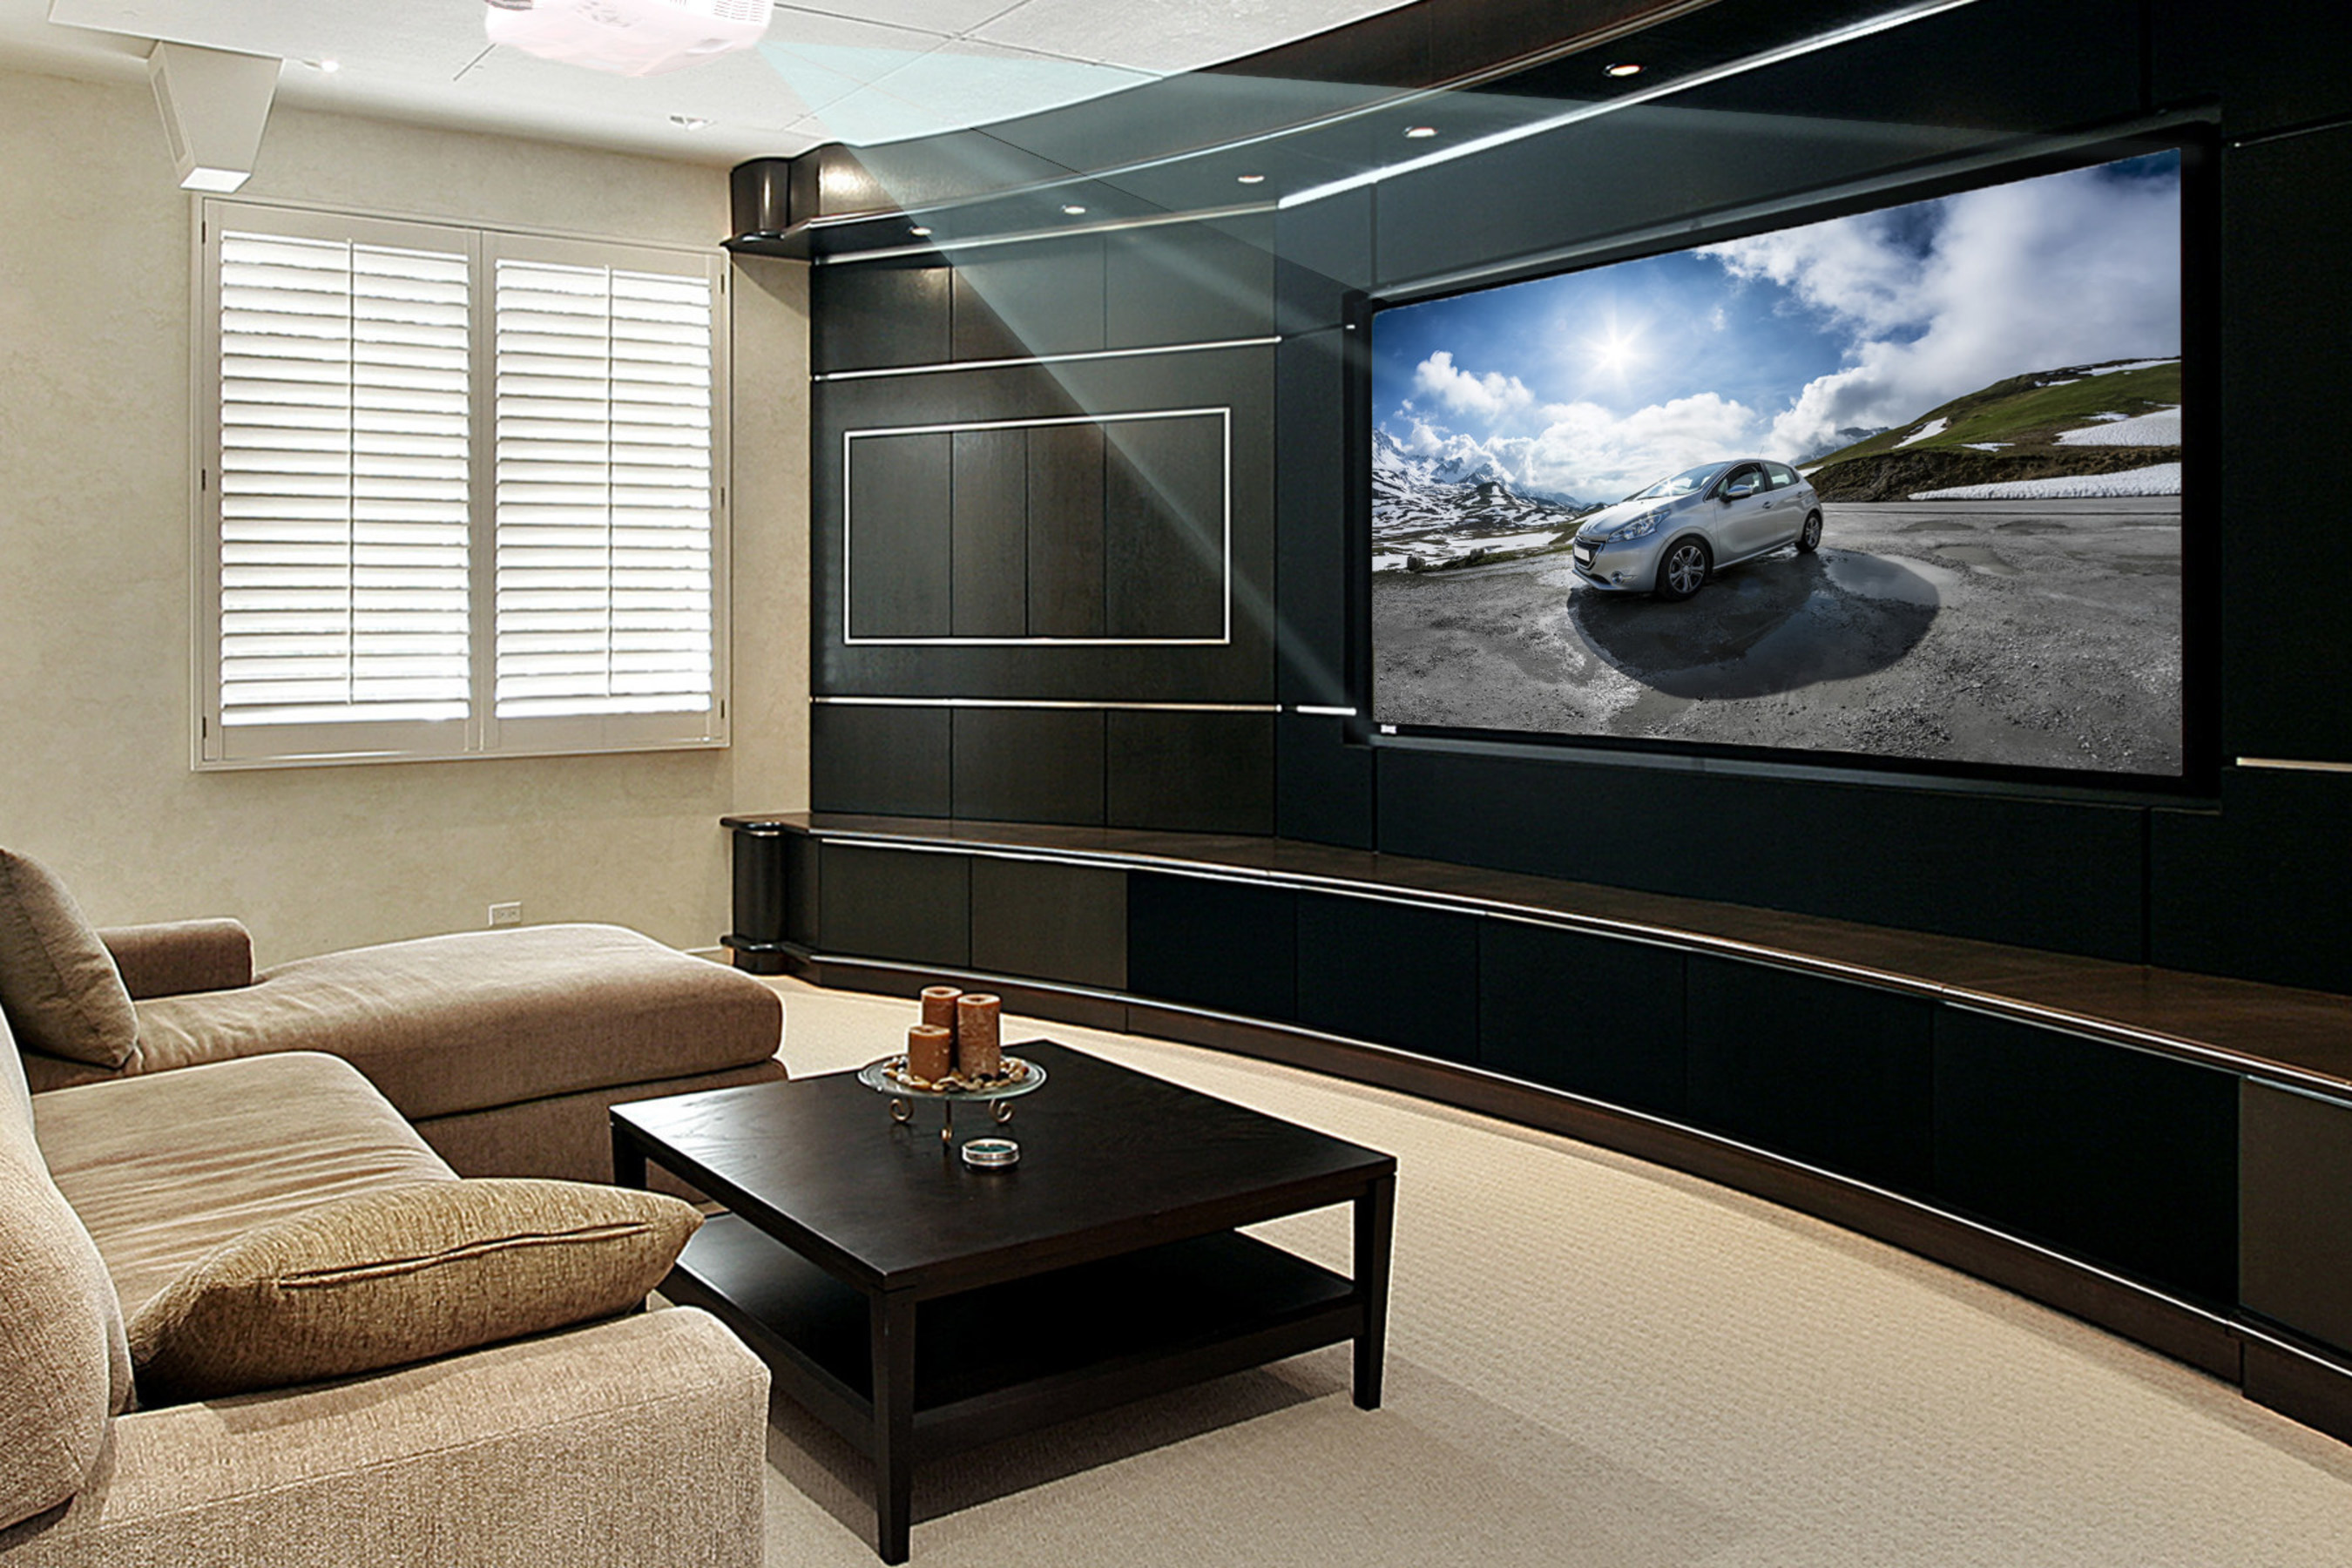 DLP technology combines speed and performance for accurate, razor sharp, 4K UHD projection displays.